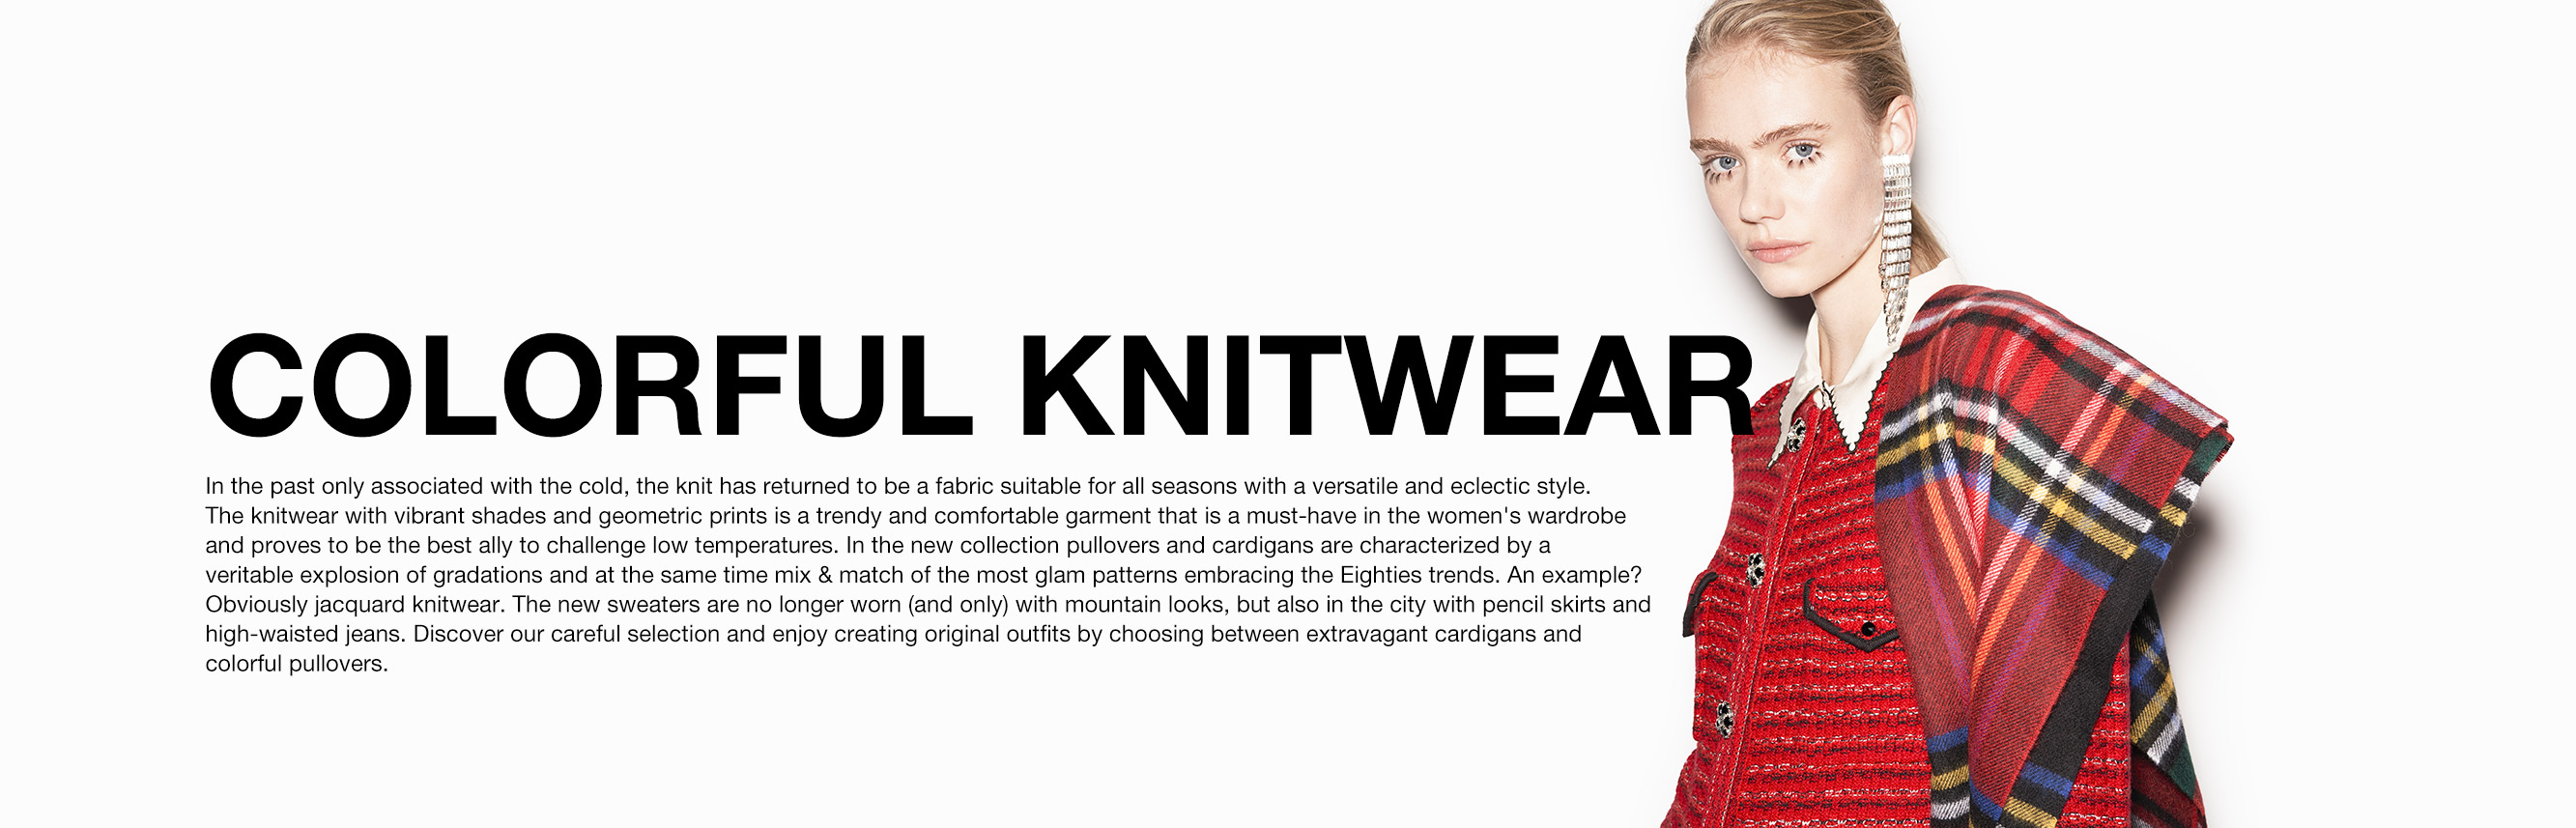 Colorful knitwear for women